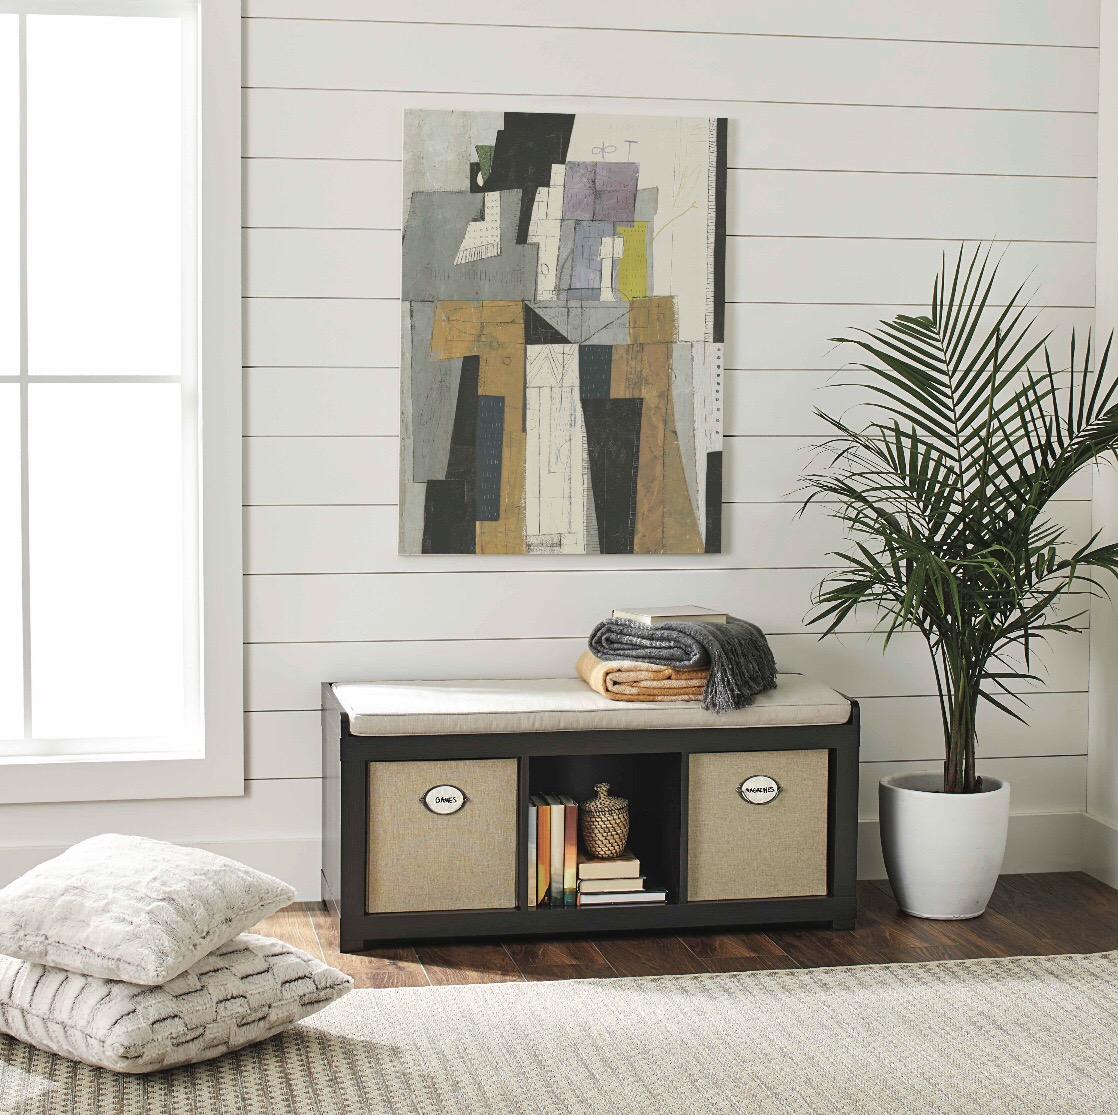 Hot Deal On This 3 Cube Storage Bench From Walmart. Right Now You Can Grab  The BHG Organizer Bench For Just $25.35 + FREE Store Pick Up (Reg $99.00)!!!